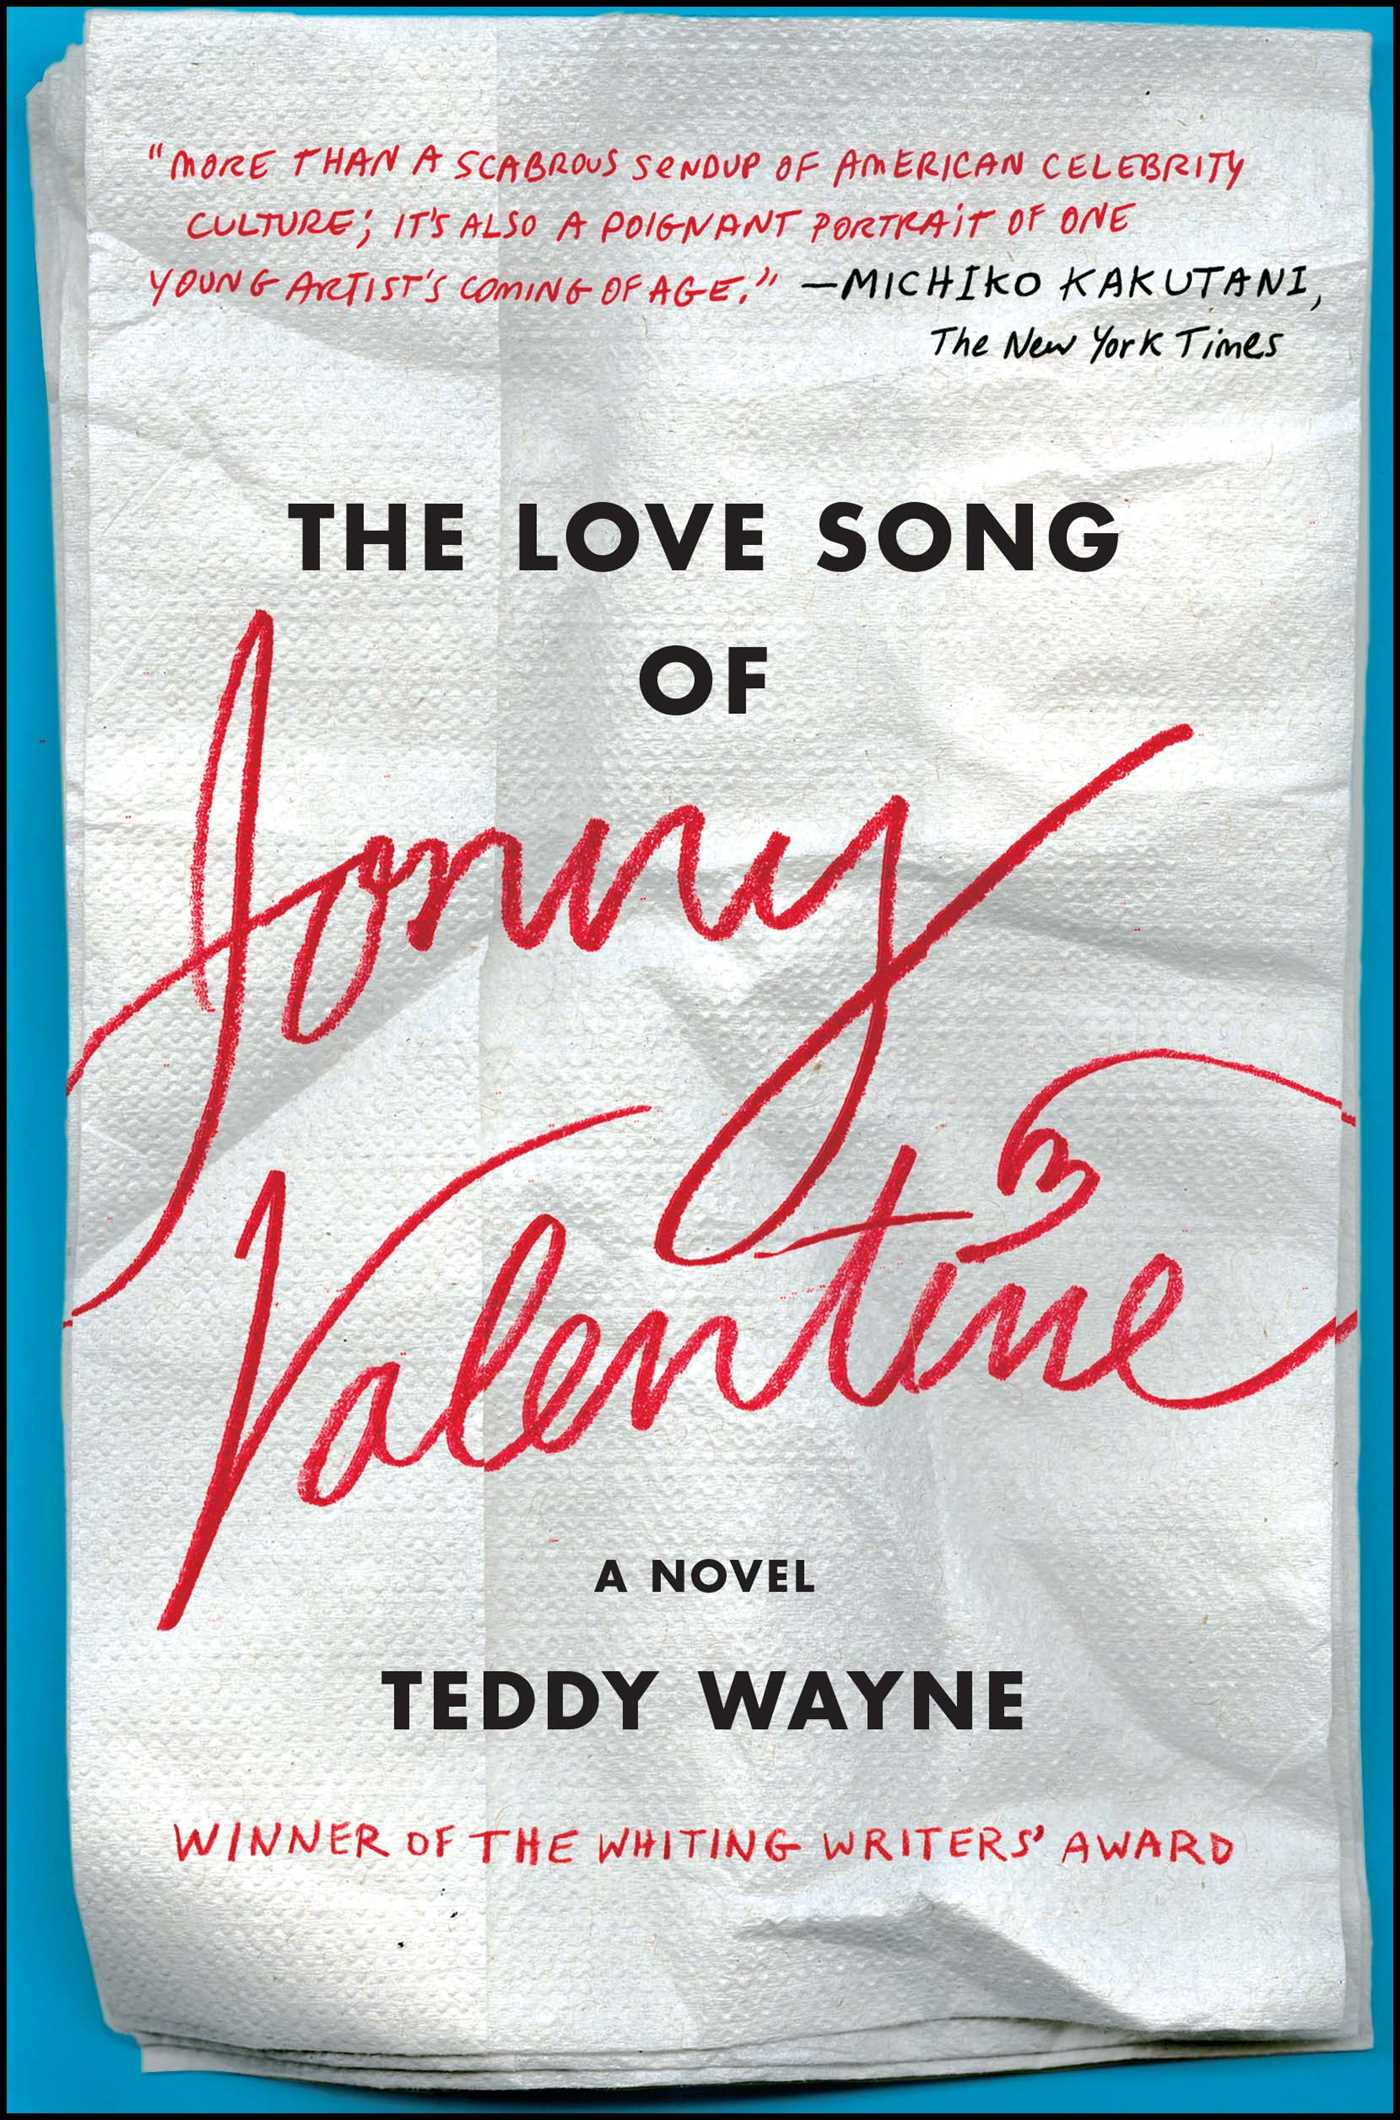 The love song of jonny valentine 9781476705866 hr